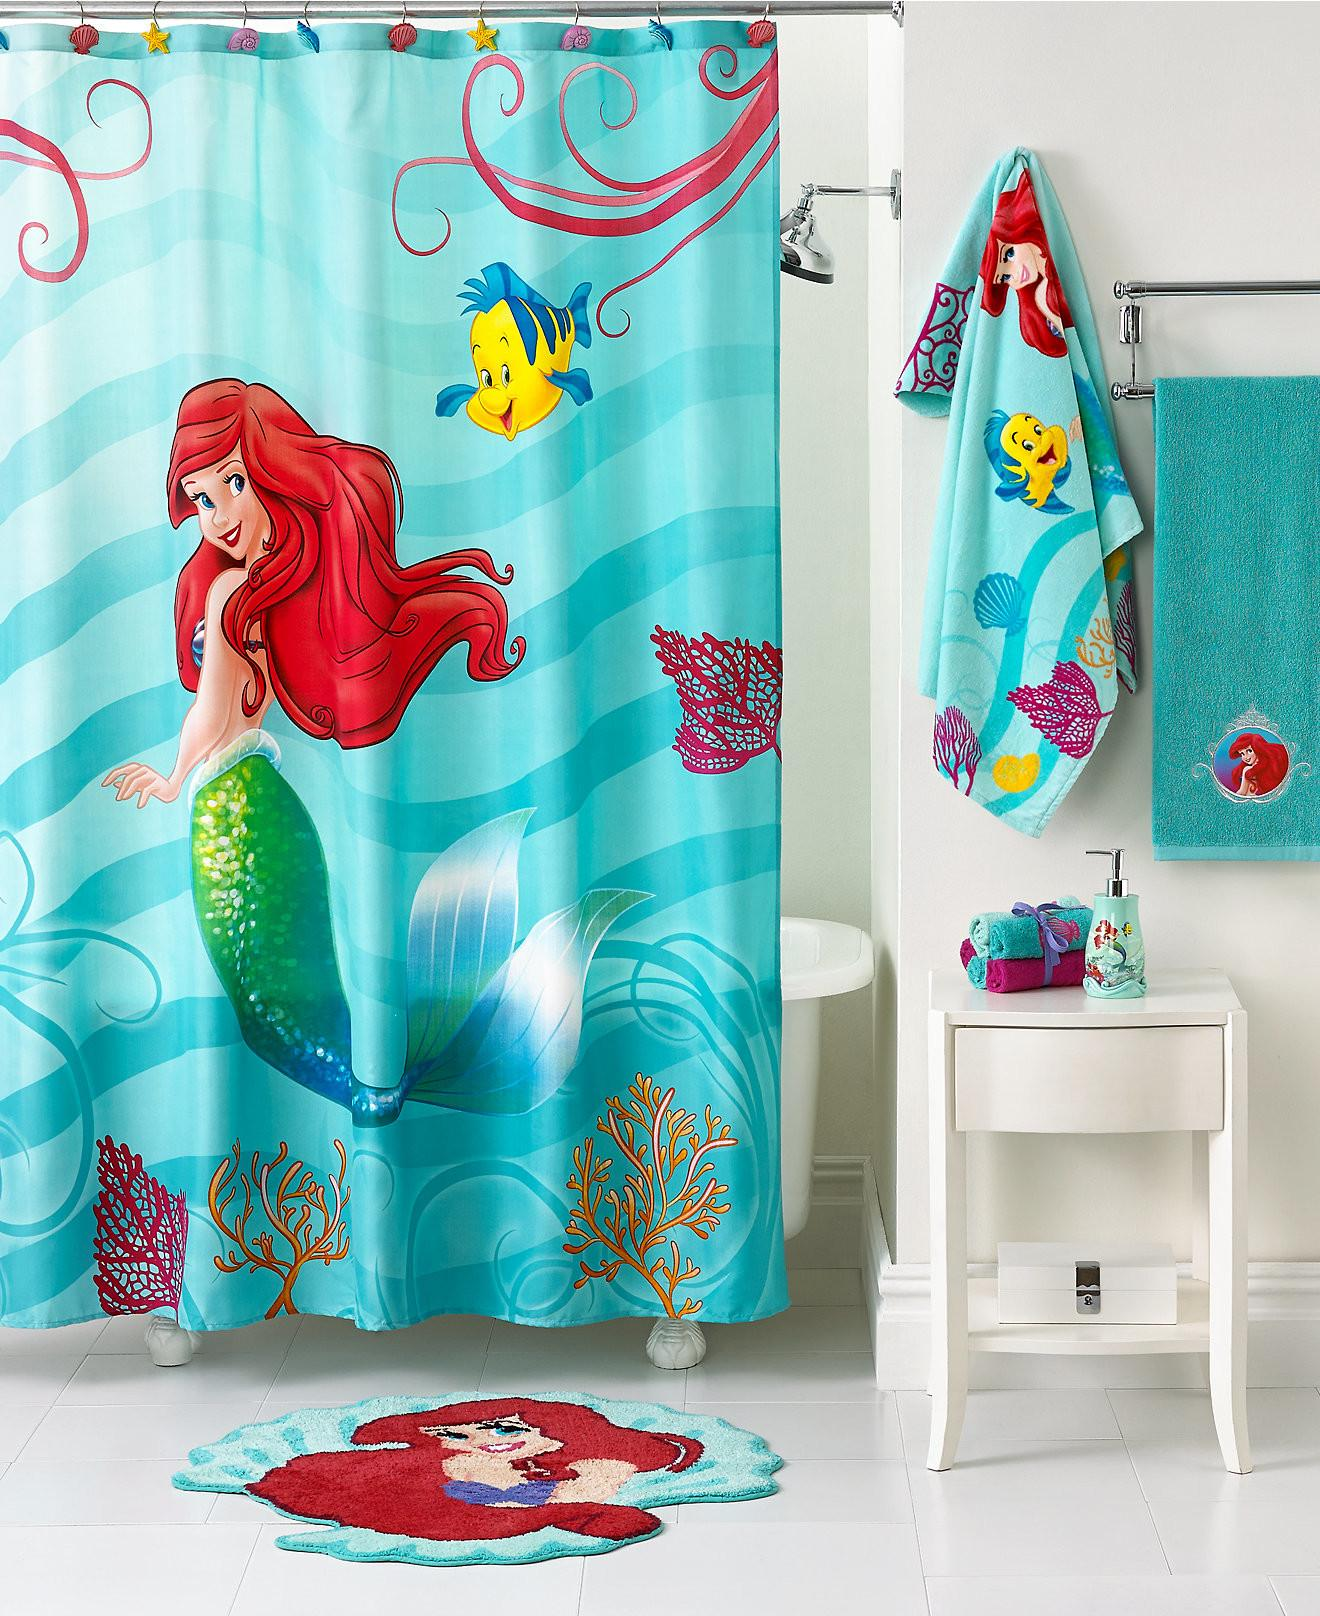 Mermaid Shower Curtain Kids Bathroom Decor White